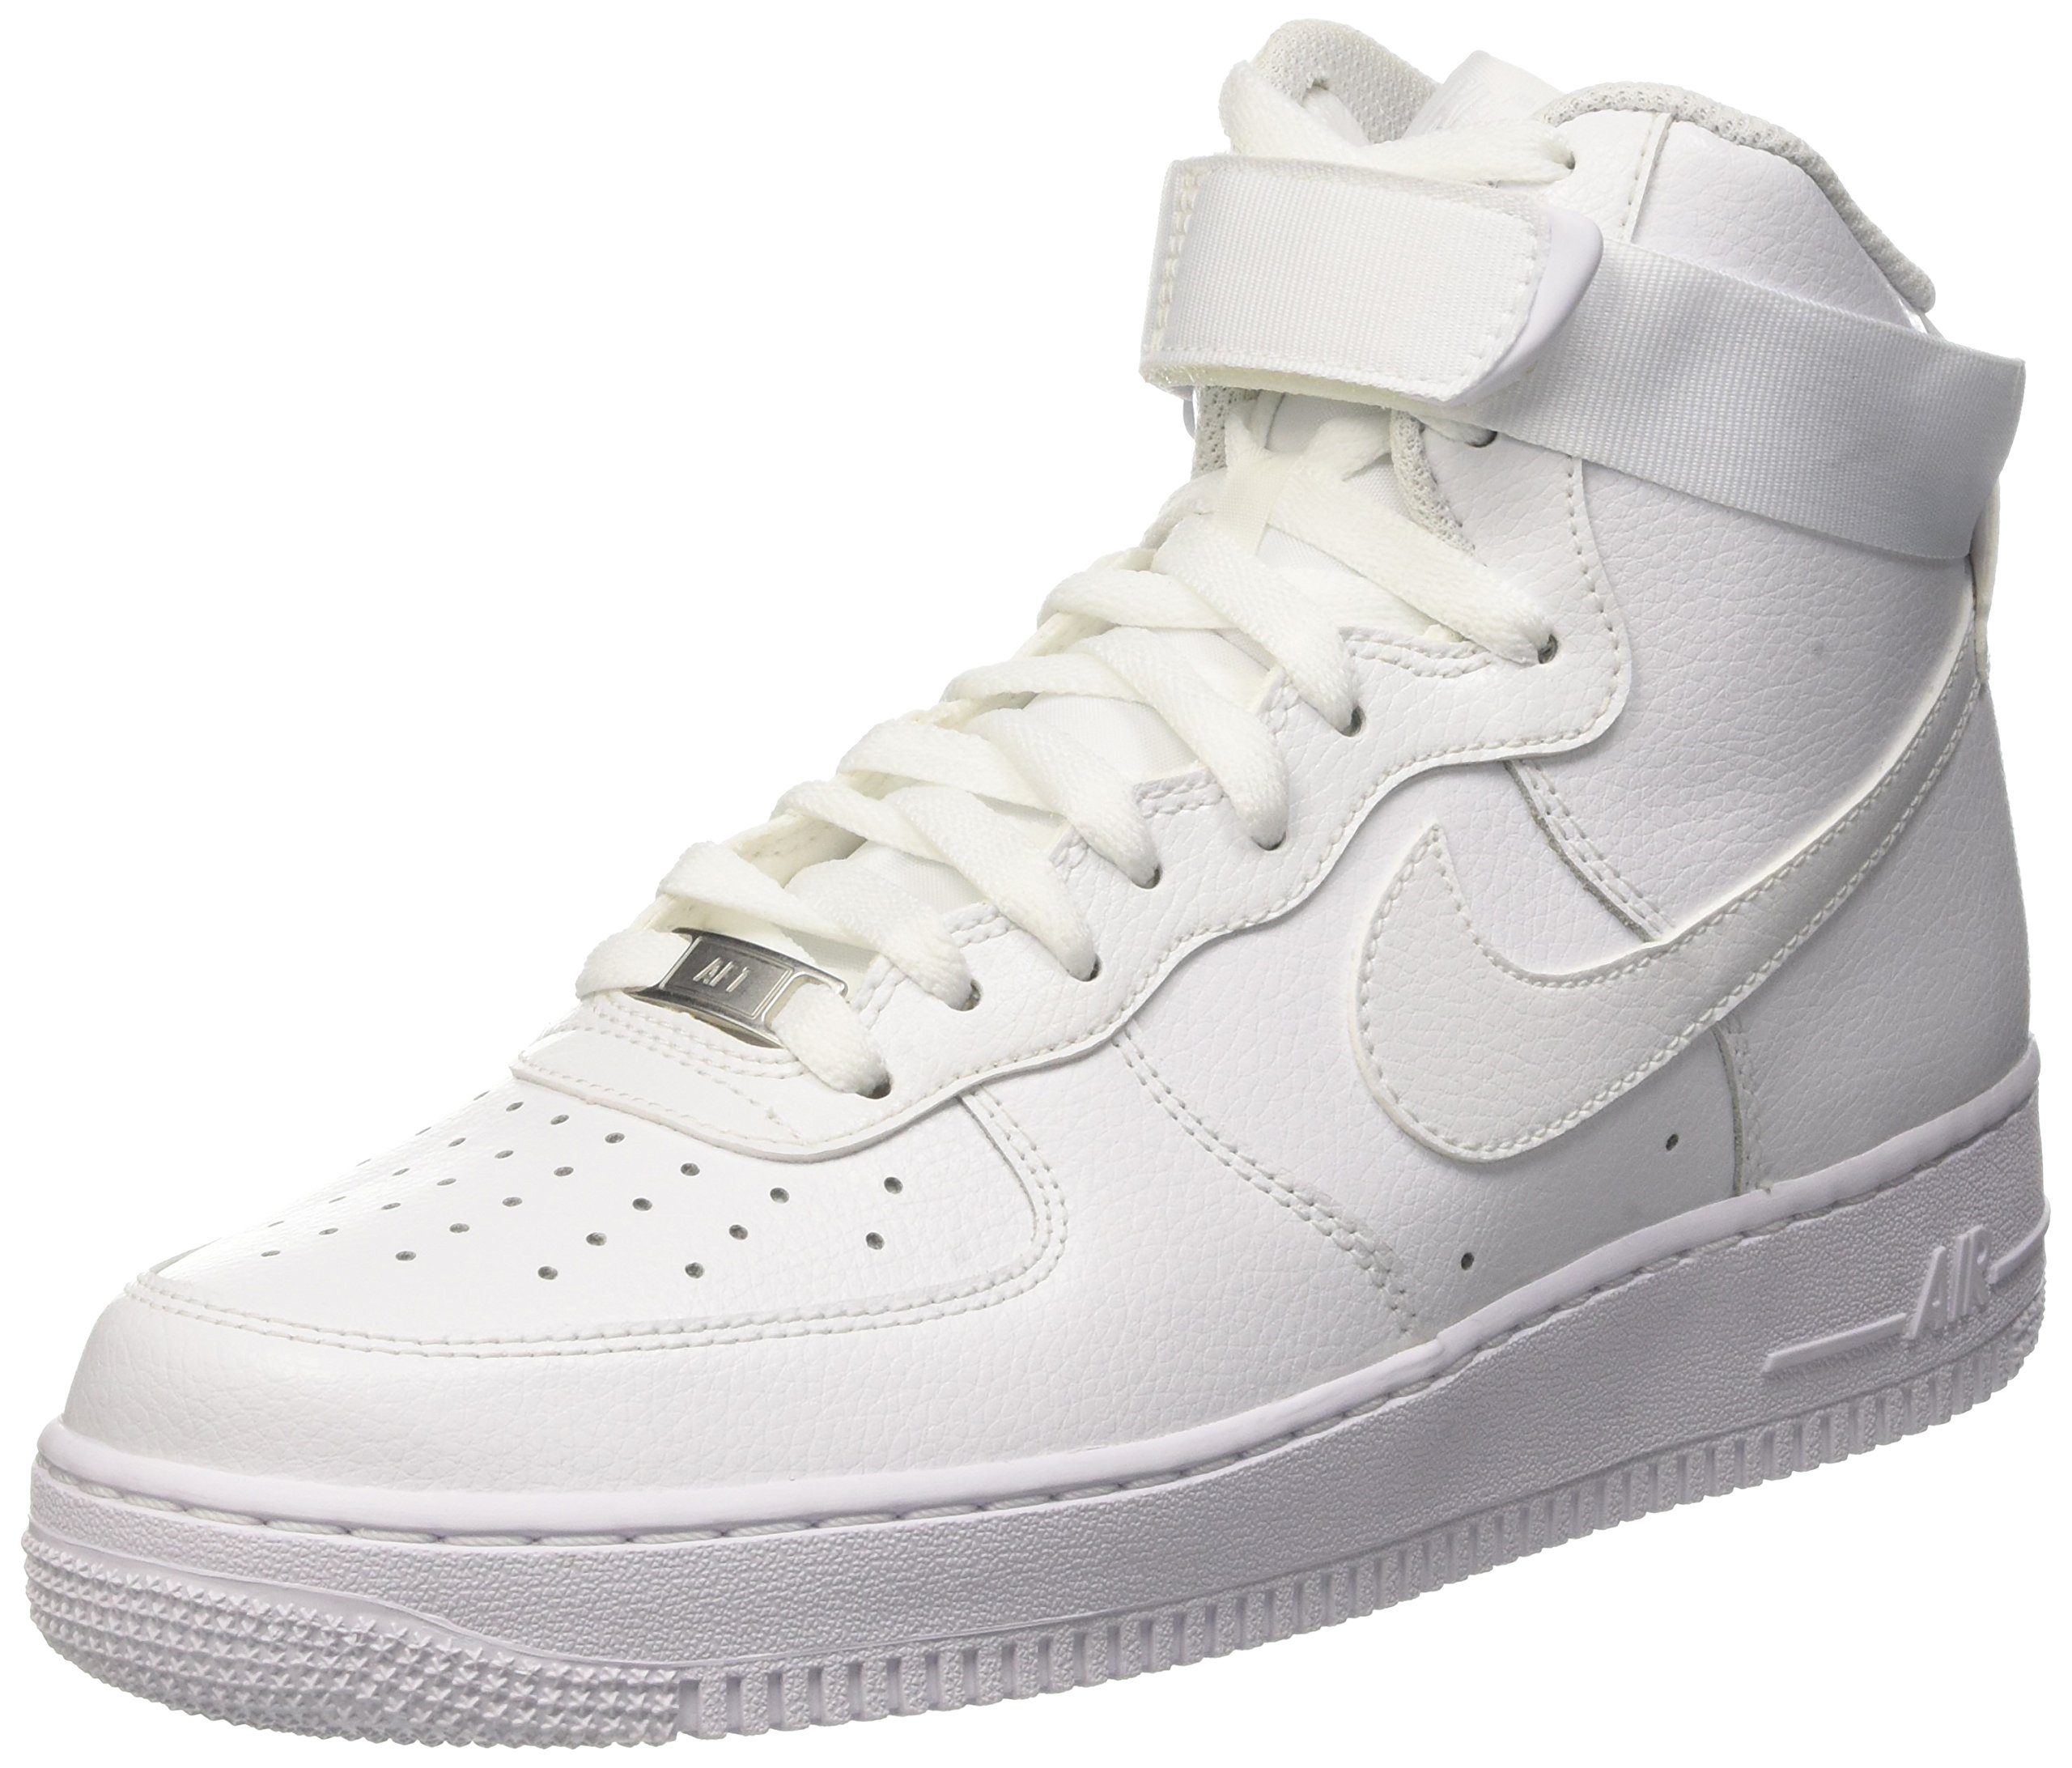 Nike Mens Air Force 1 High '07 White Leather Size 6.5